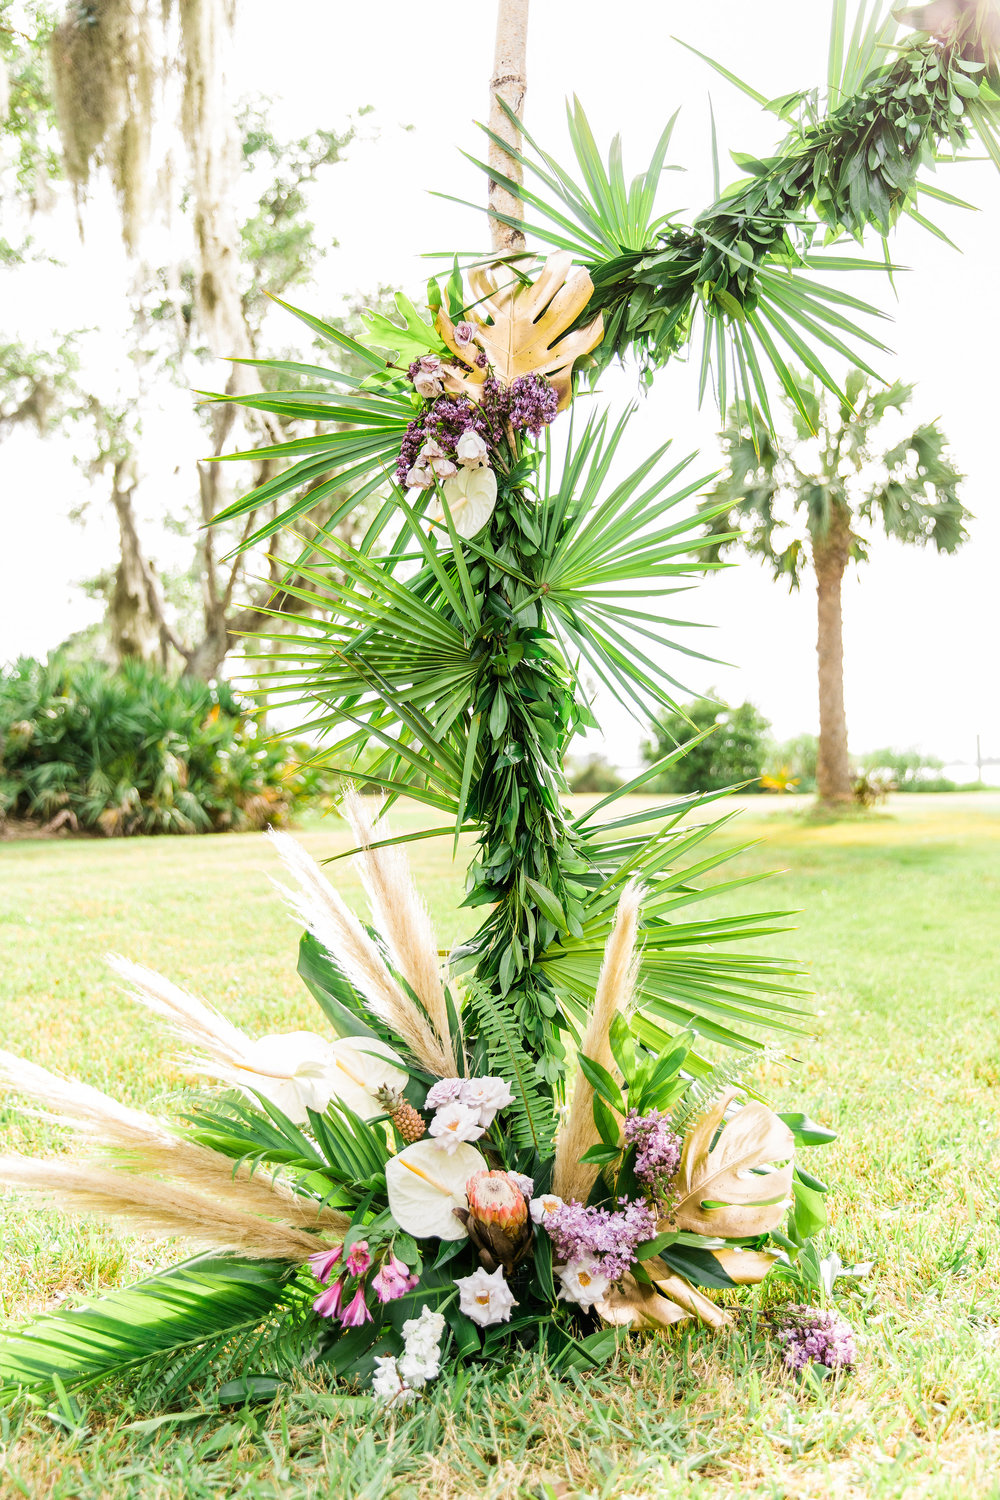 savannah-bridal-shop-i-and-b-couple-gretchen-and-alex-fun-and-unique-tropical-wedding-at-captains-bluff-st-simons-island-wedding-marianne-lucille-photography-27.jpg